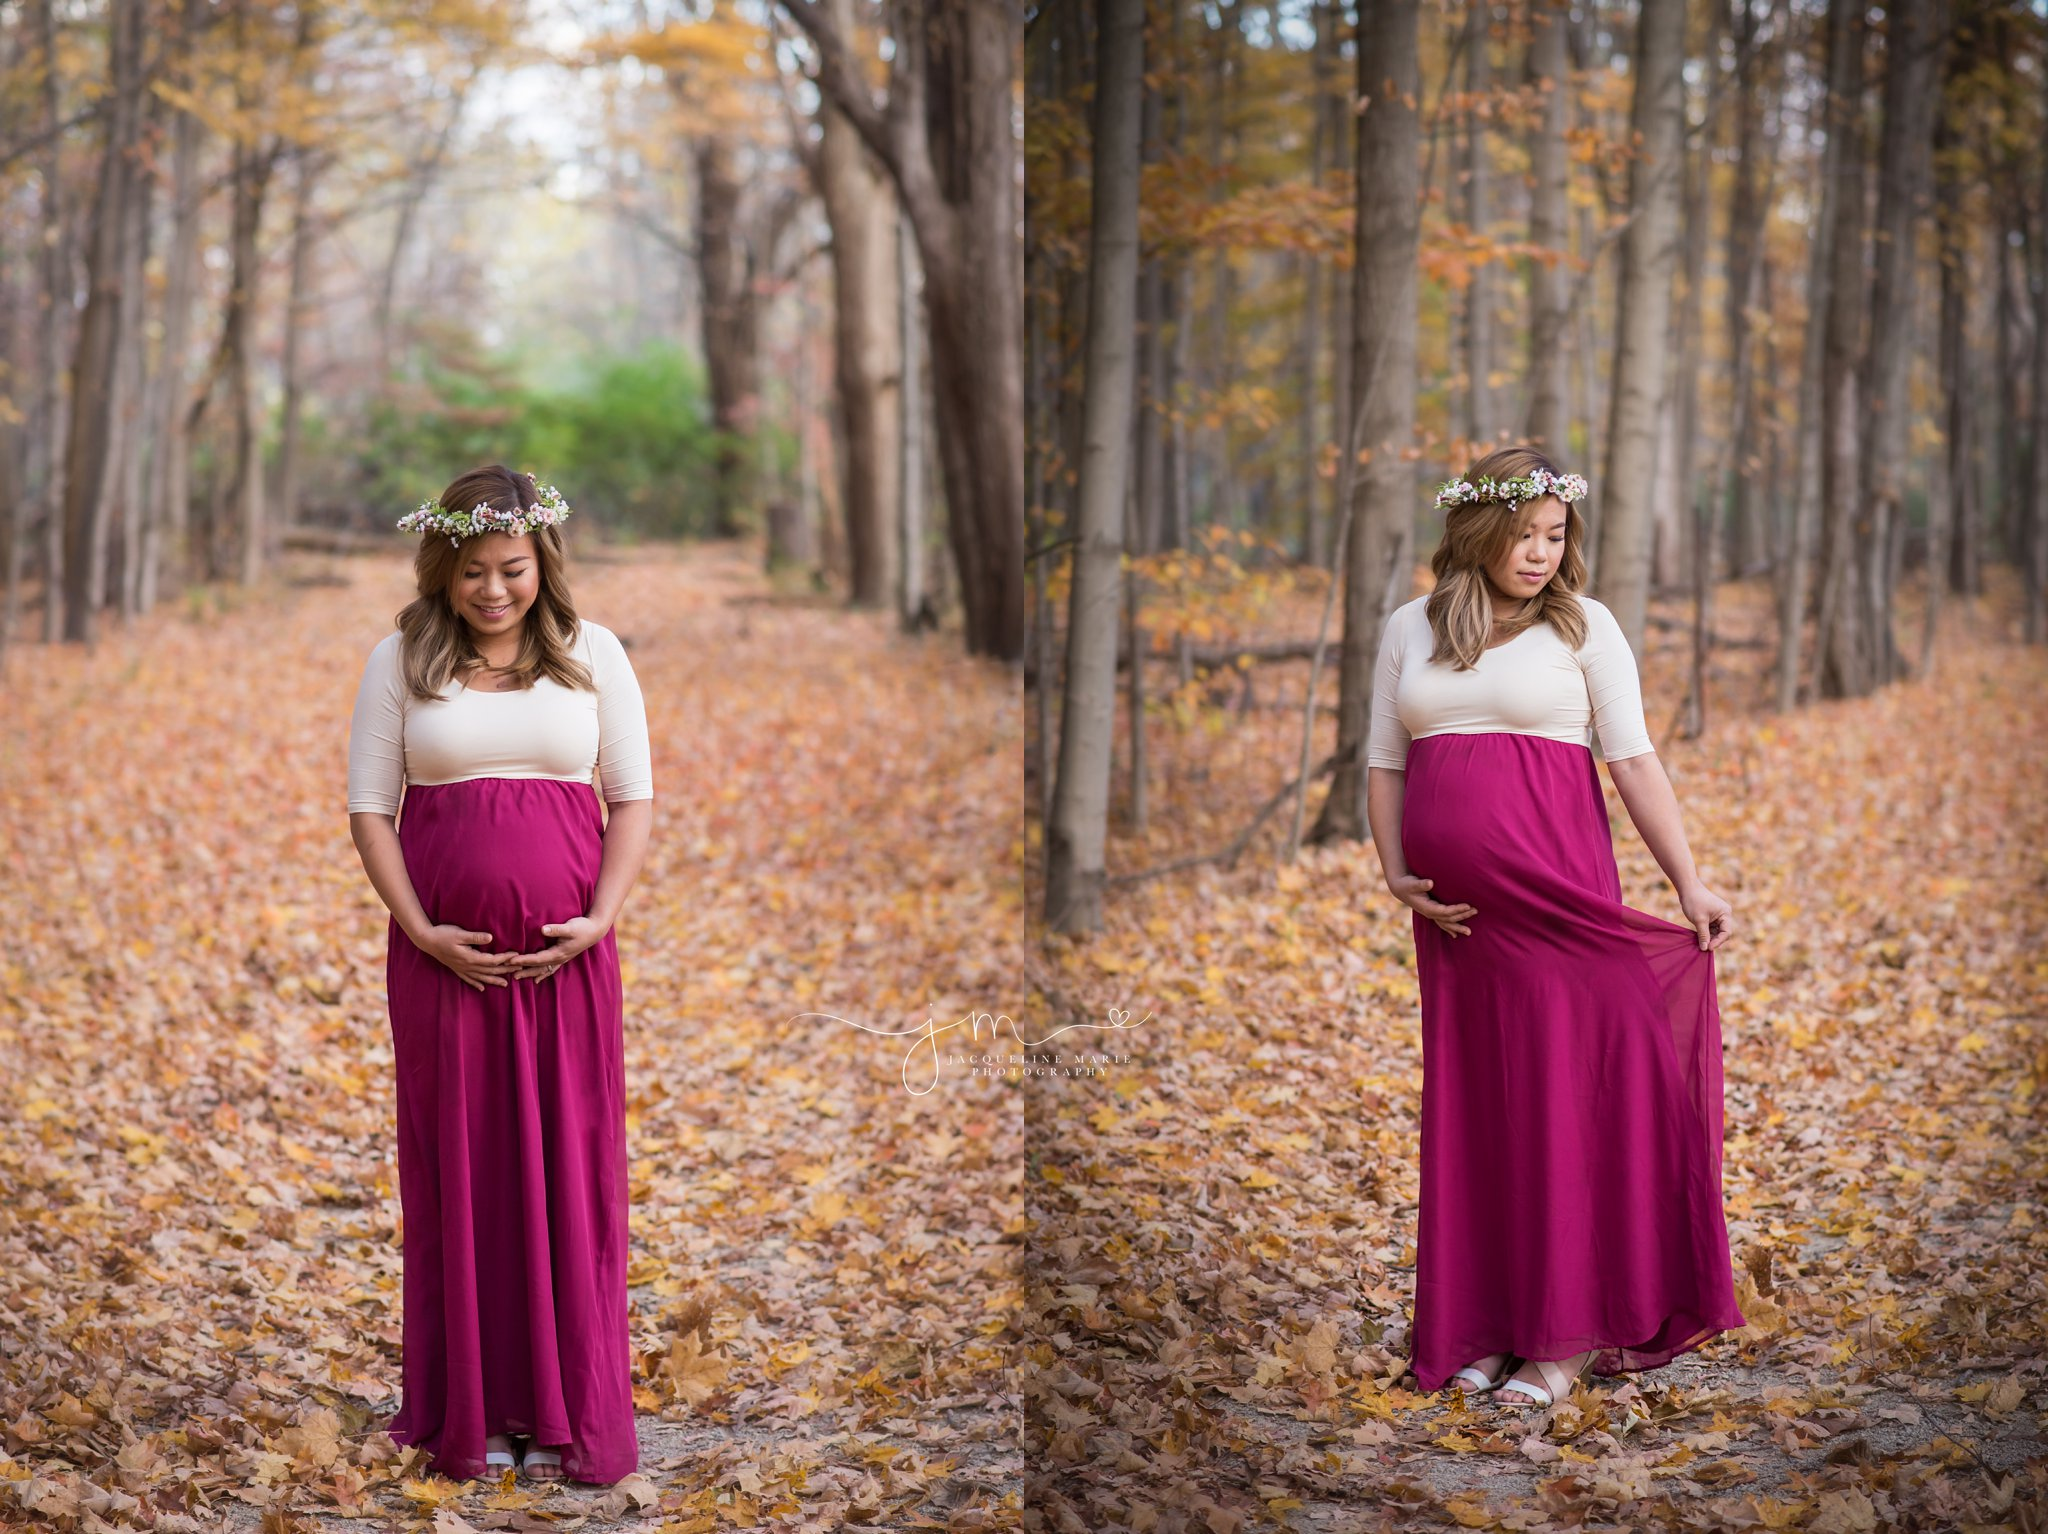 newborn photographer in columbus ohio offer maternity and pregnancy pictures to mother expecting newborn baby